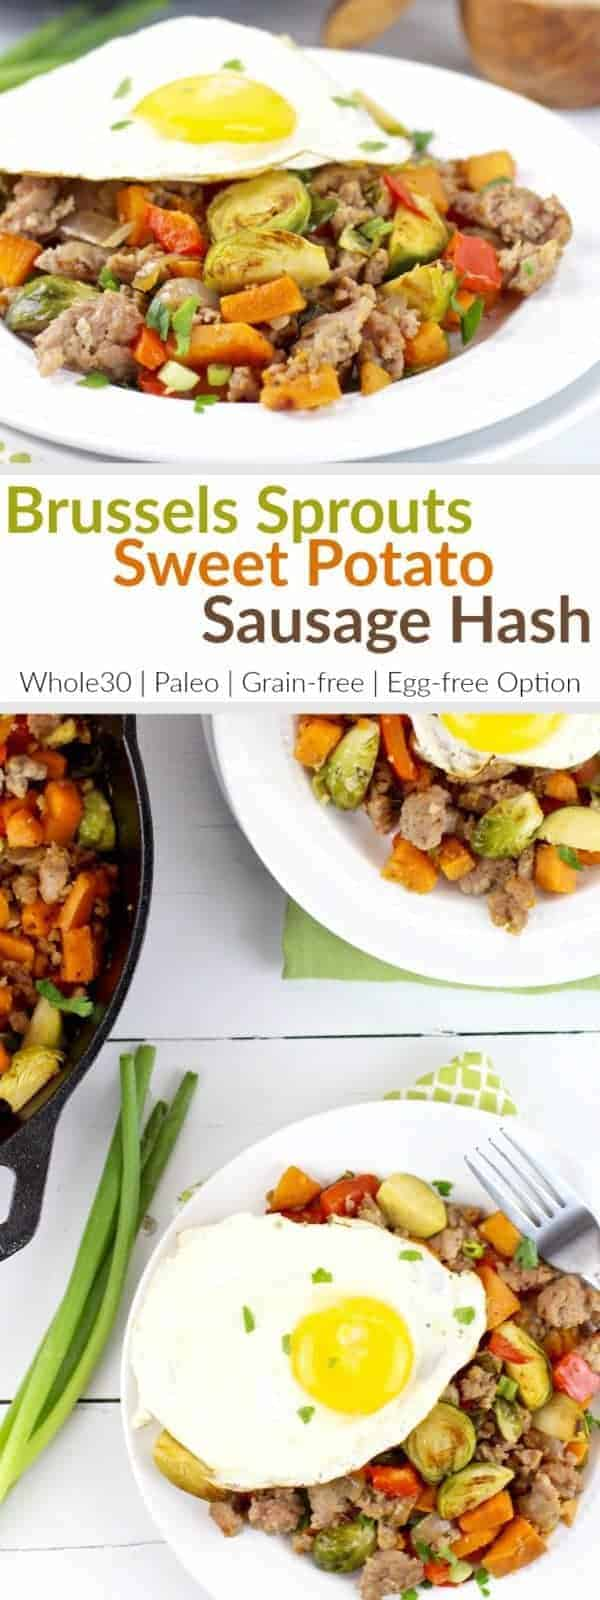 Brussels Sprouts Sweet Potato Sausage Hash has everything you need to start your morning off on a healthy note. It's a hearty dish with quality protein, a good source of fiber and a serving of veggies too. | Whole30 | Paleo | Grain-free | Gluten-free | Dairy-free | Egg-free option